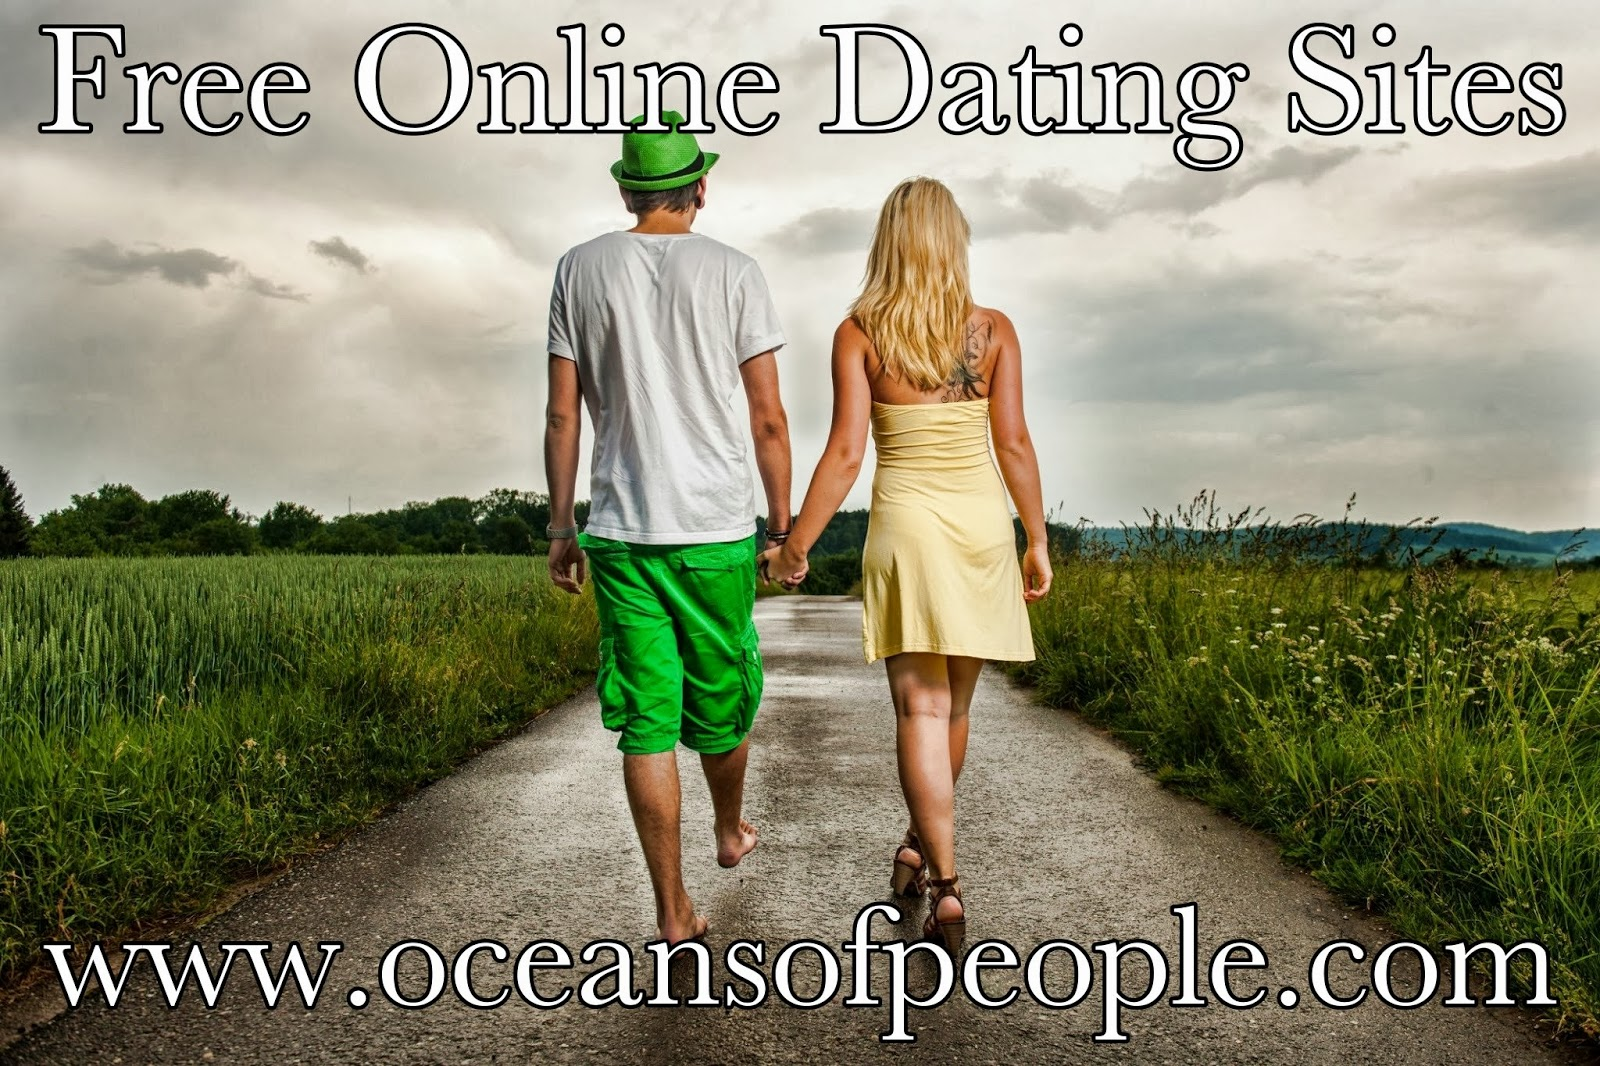 Afroamerikaner online-dating-sites